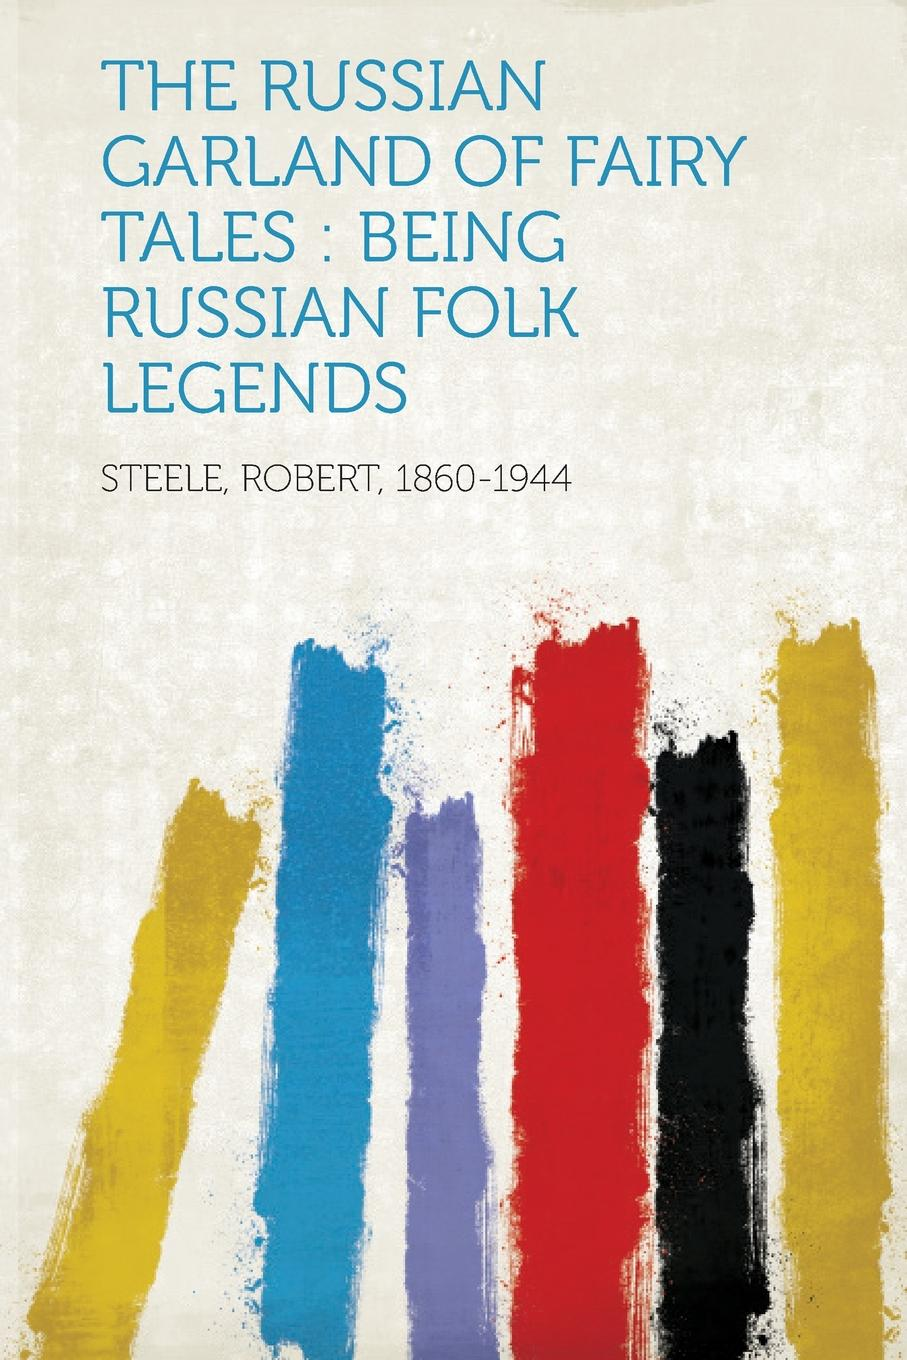 The Russian Garland of Fairy Tales. Being Russian Folk Legends